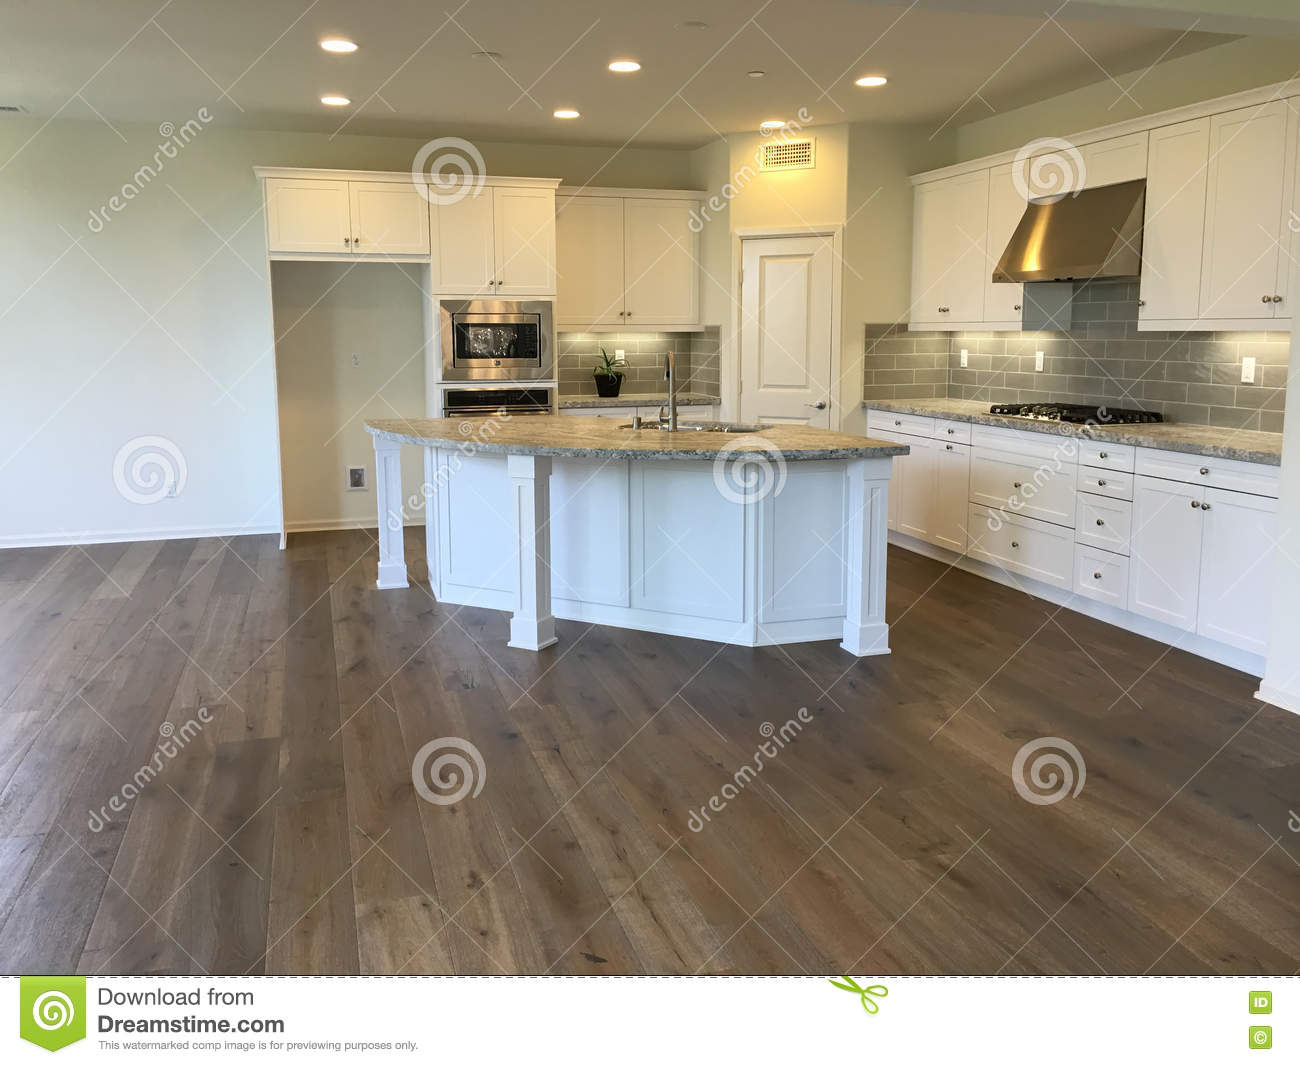 White Kitchens With Wood Floors Empty Beautiful Modern White Kitchen With Wood Floors Stock Photo